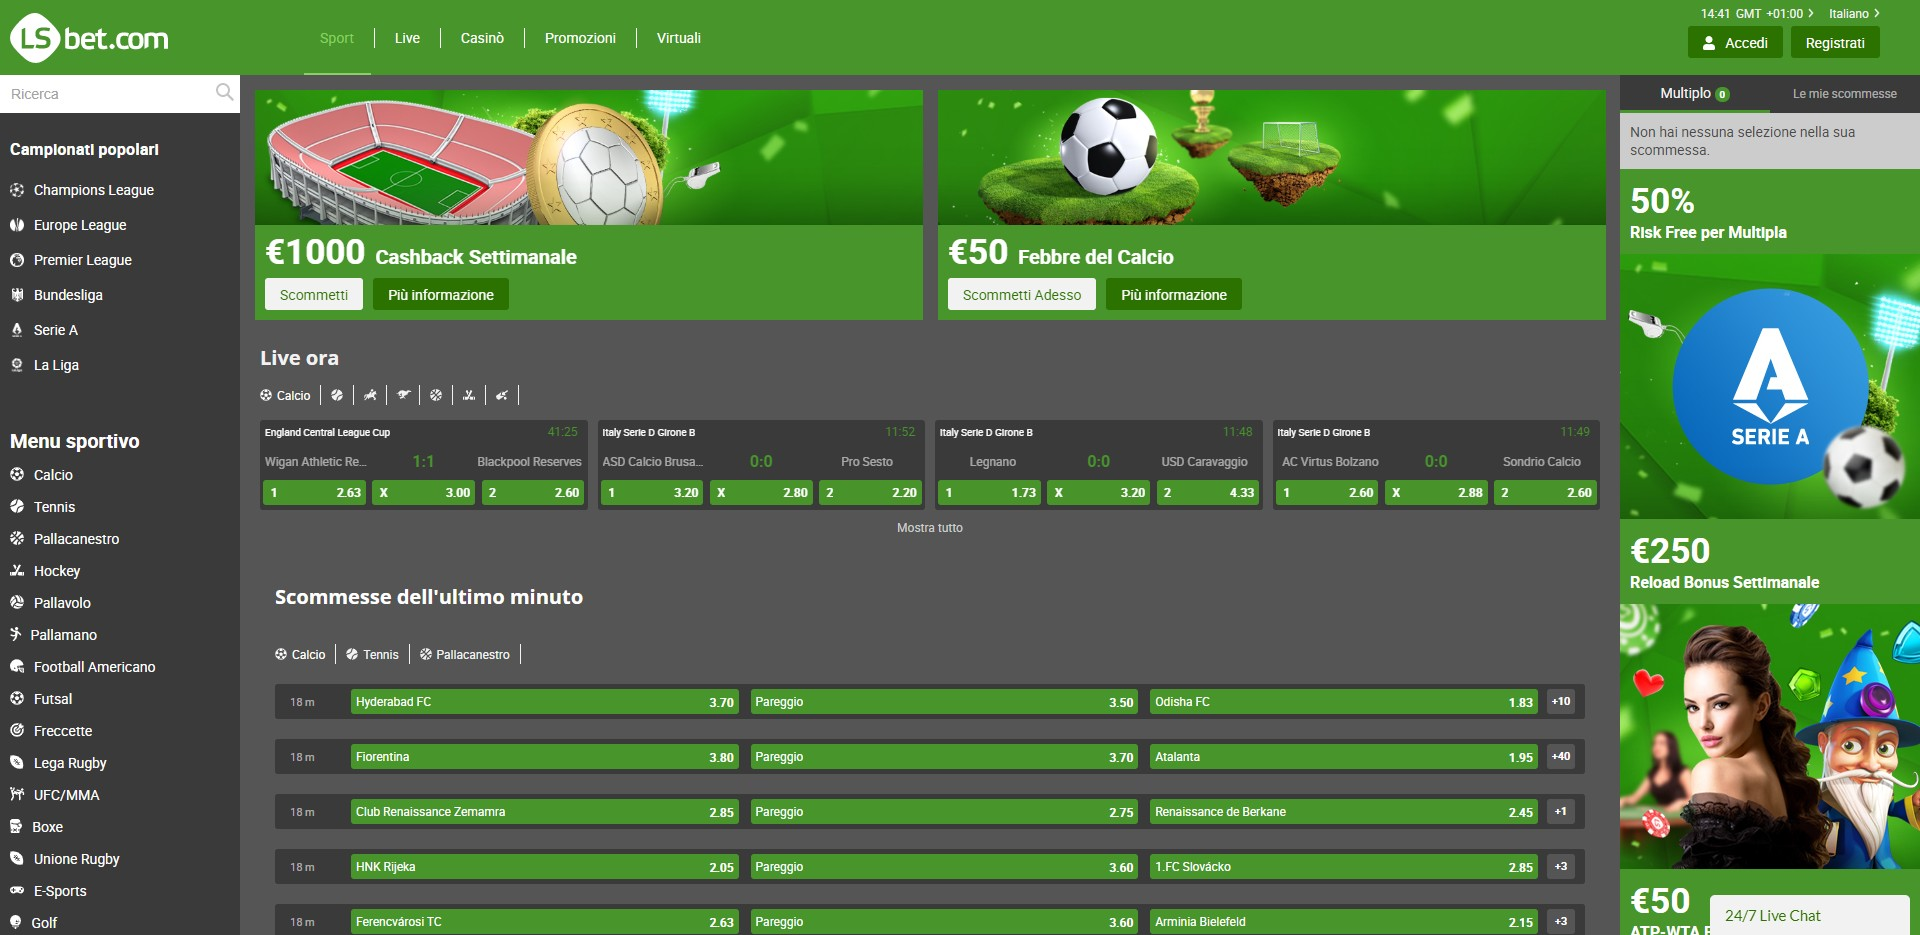 LSBET Preview